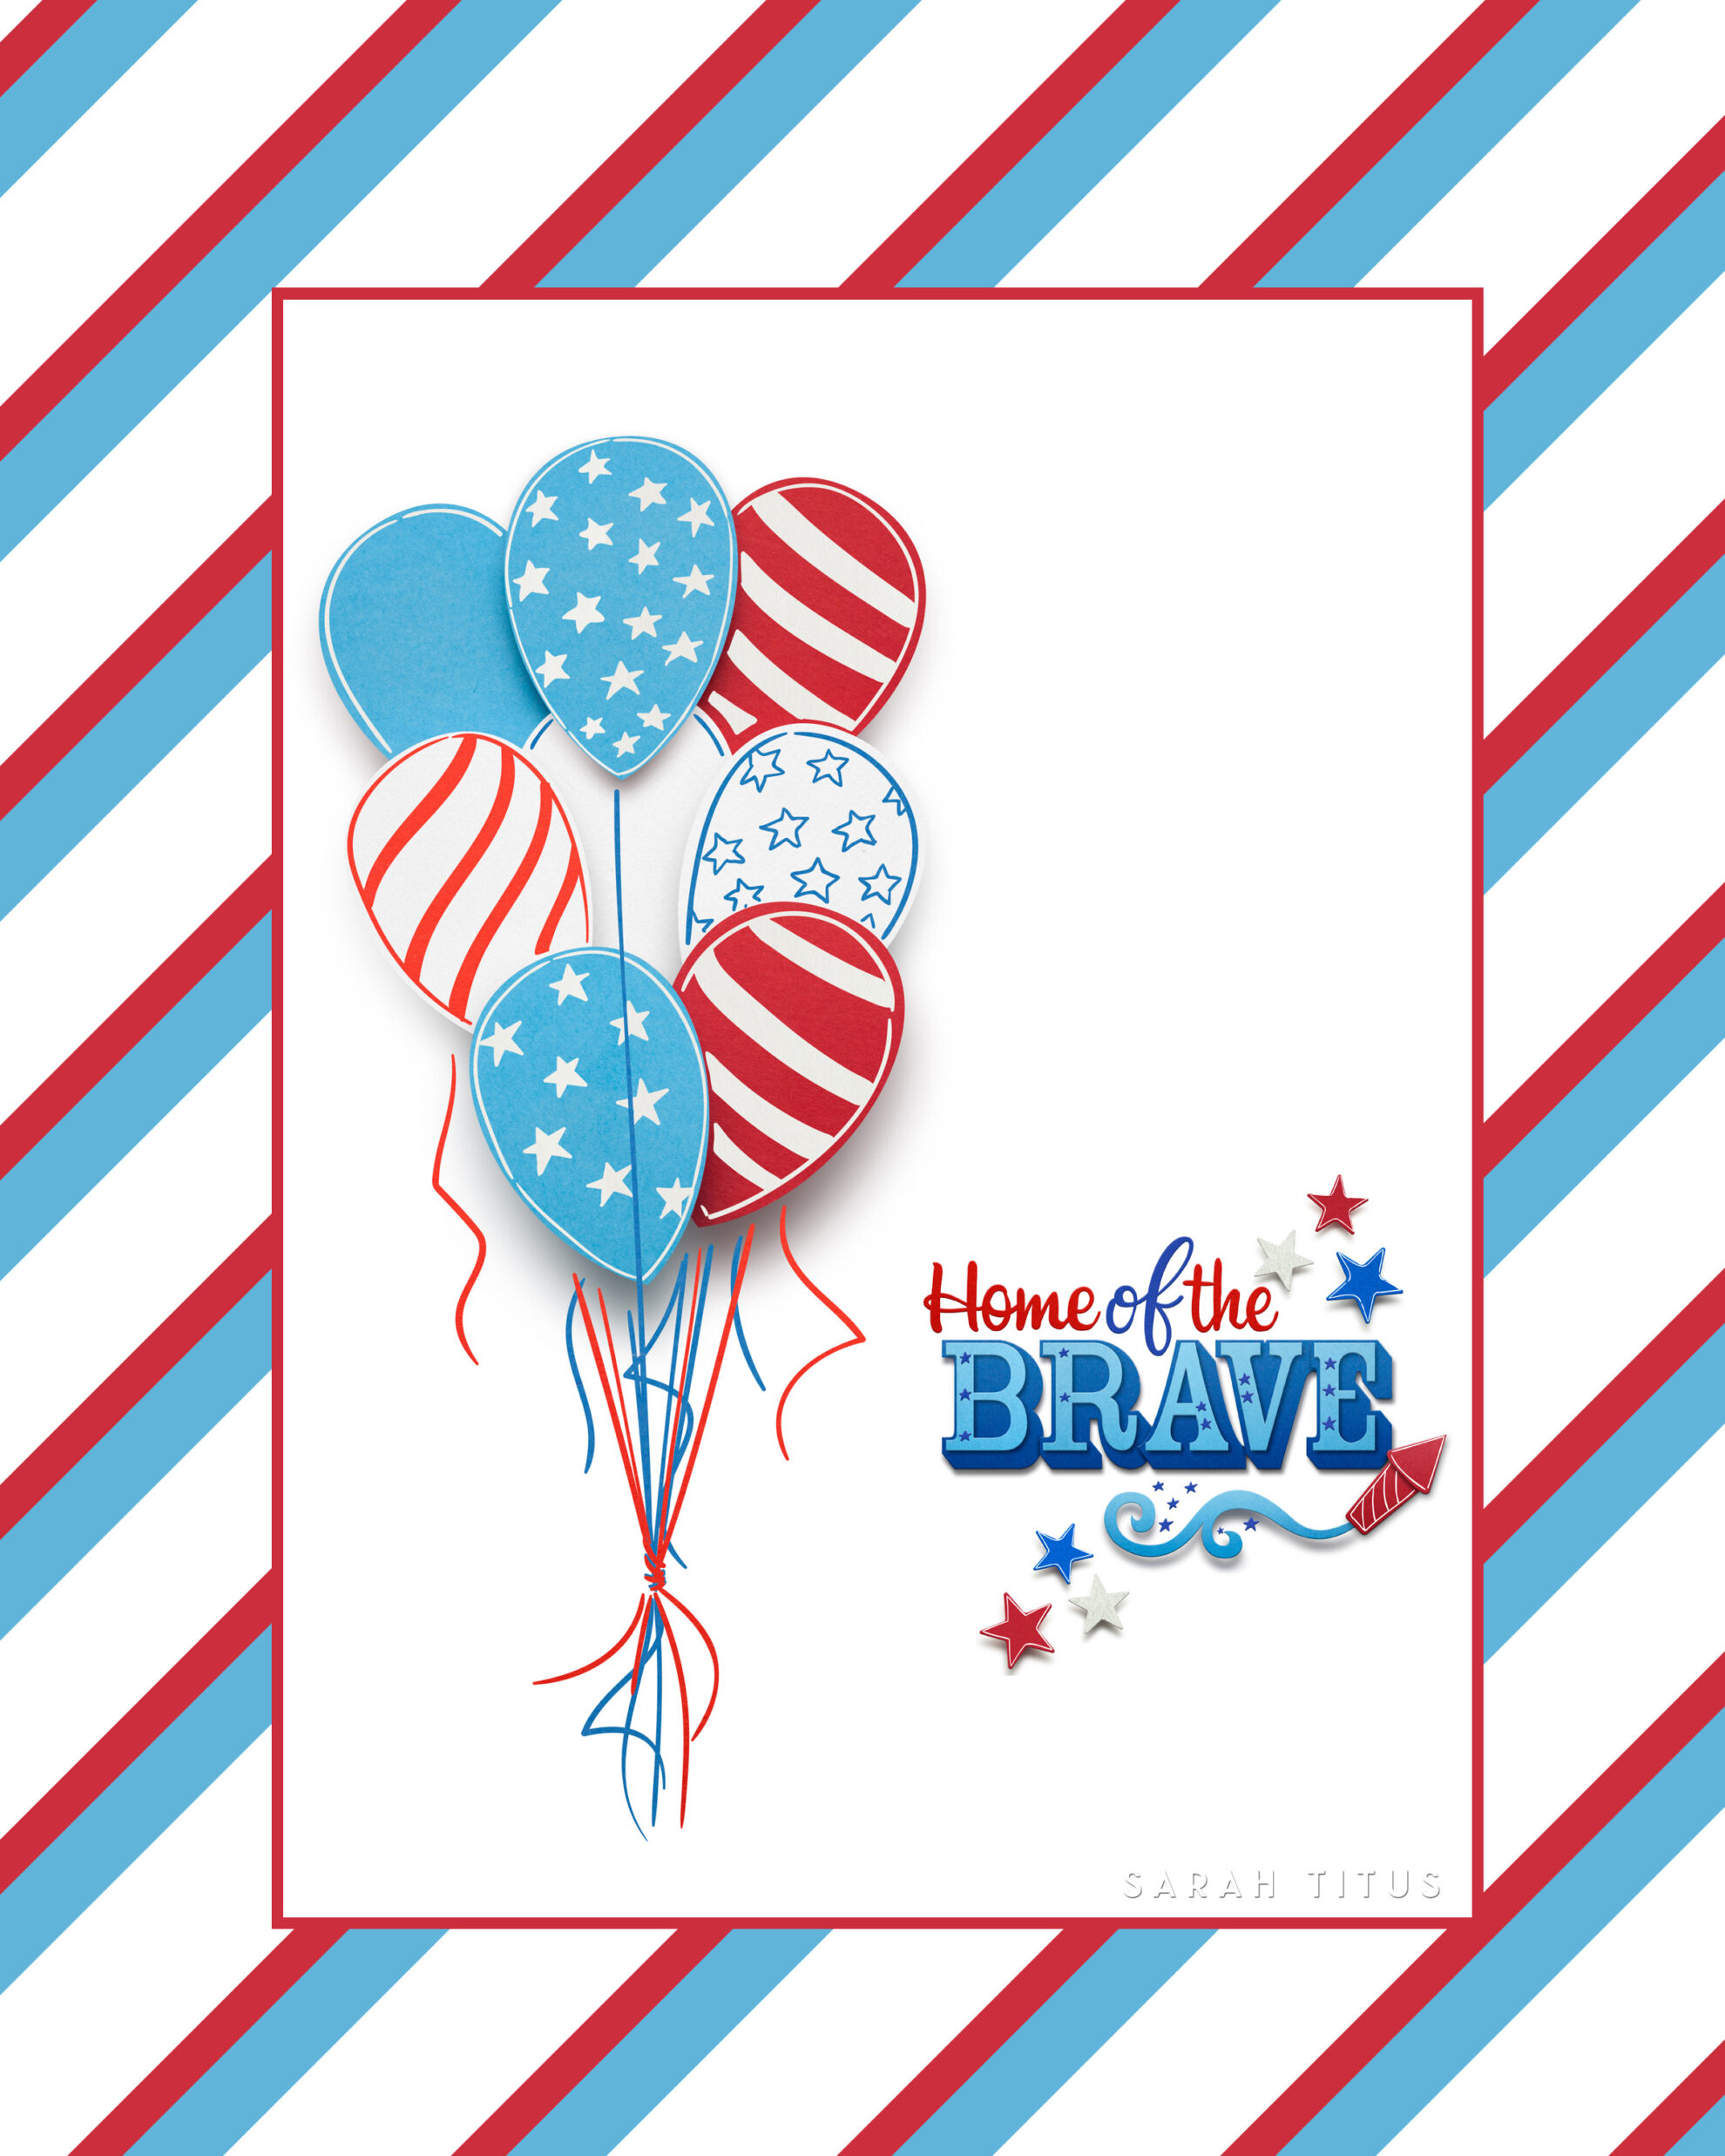 Hang this on your door, your wall, or anywhere you want to show your Fourth of July spirit!